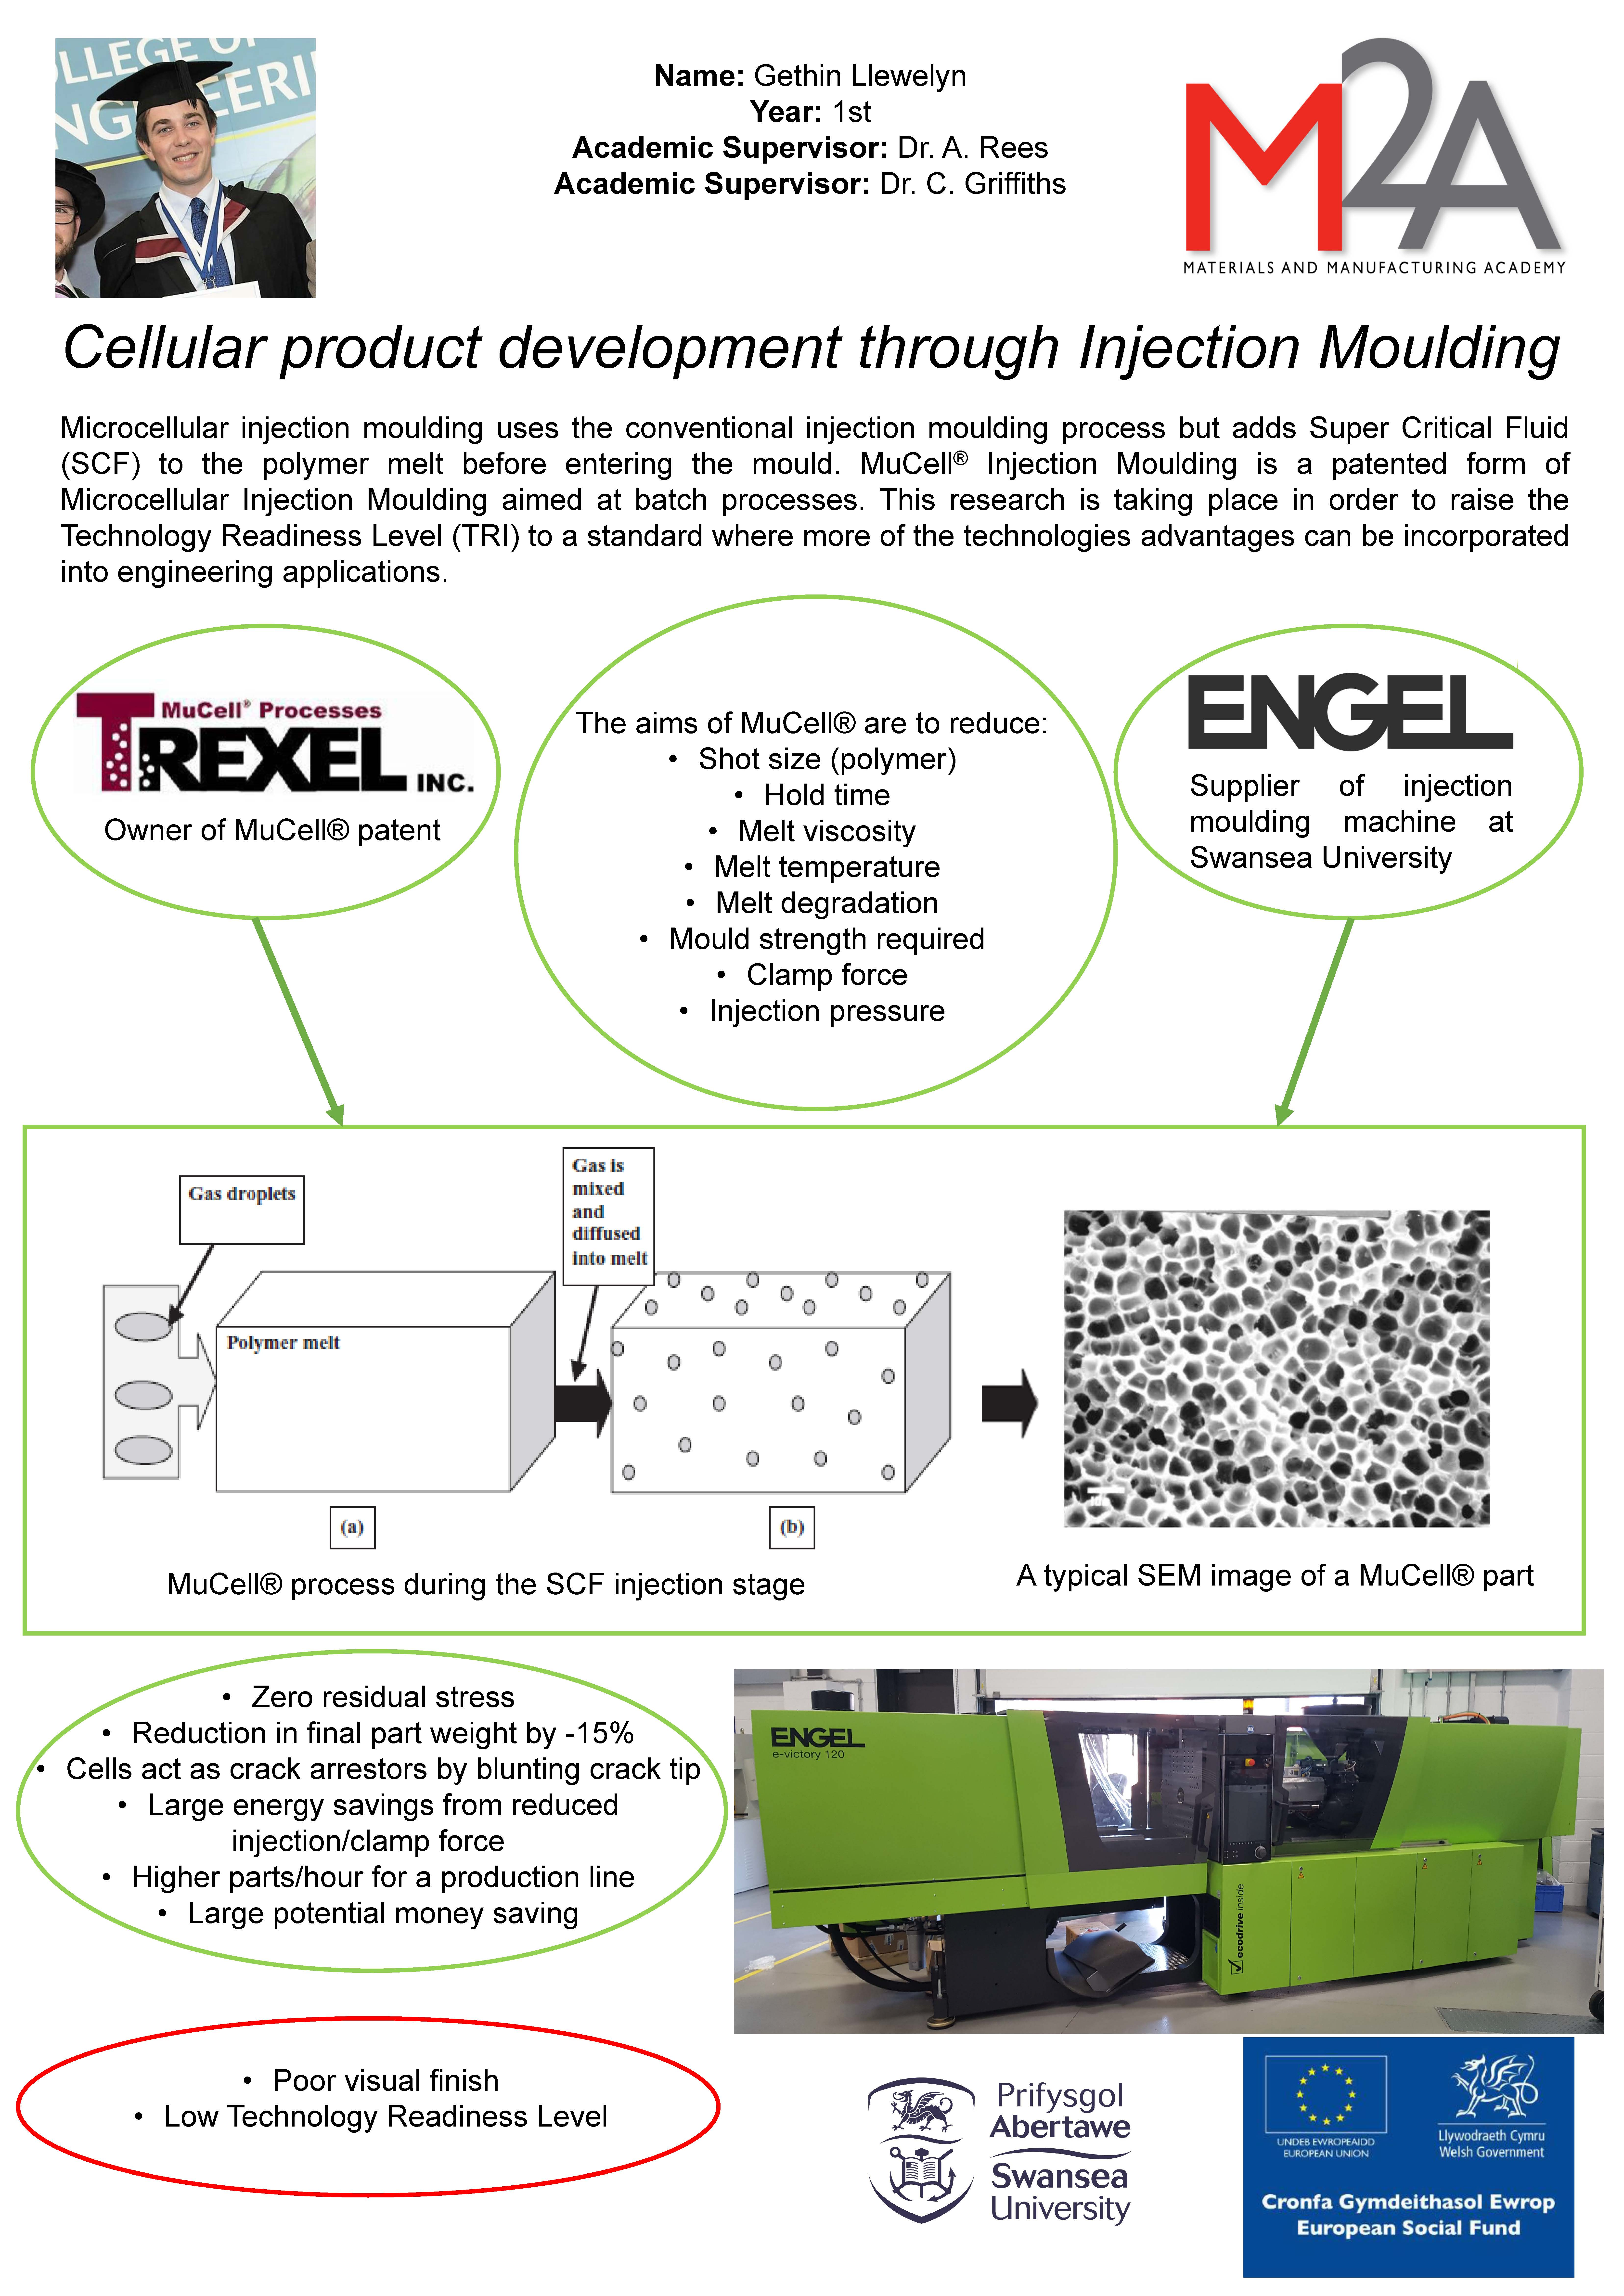 Cellular product development through Injection Moulding